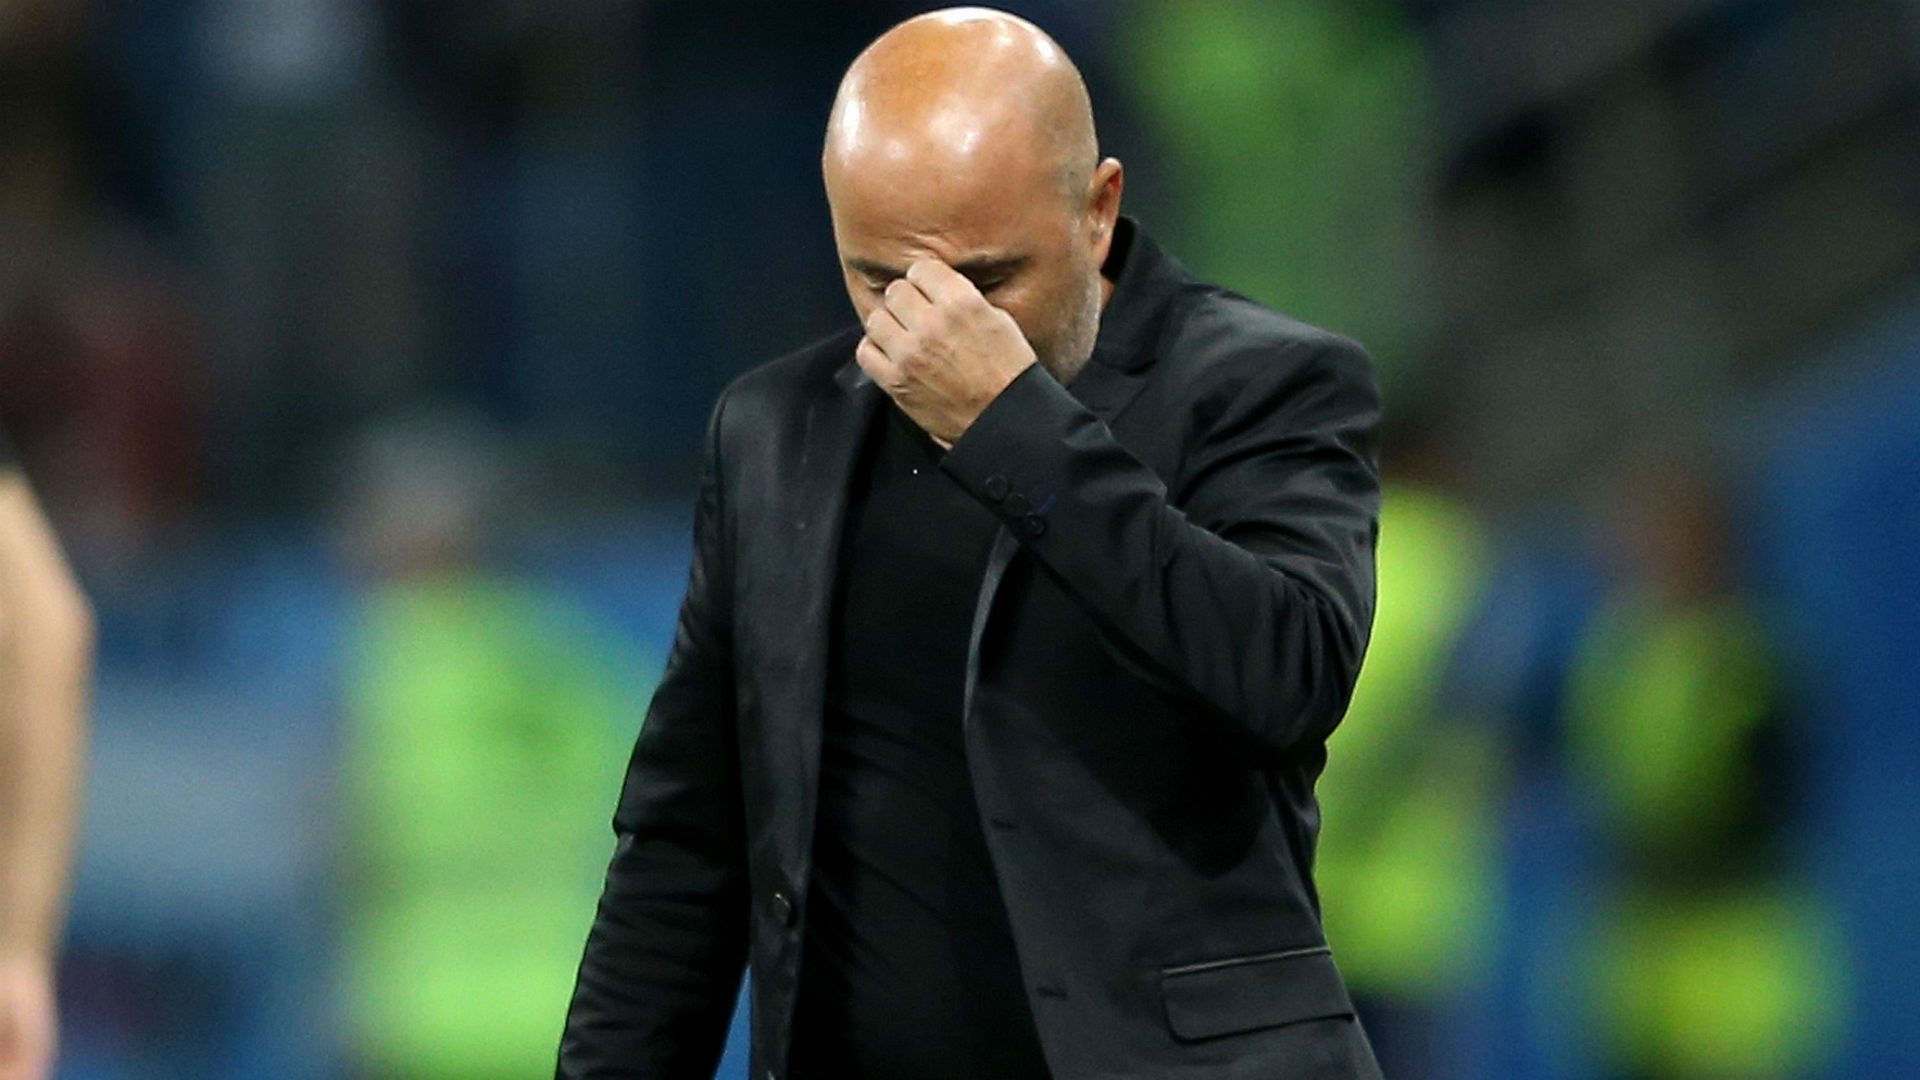 Argentina boss Jorge Sampaoli denies reports of rebellion ahead of Nigeria clash